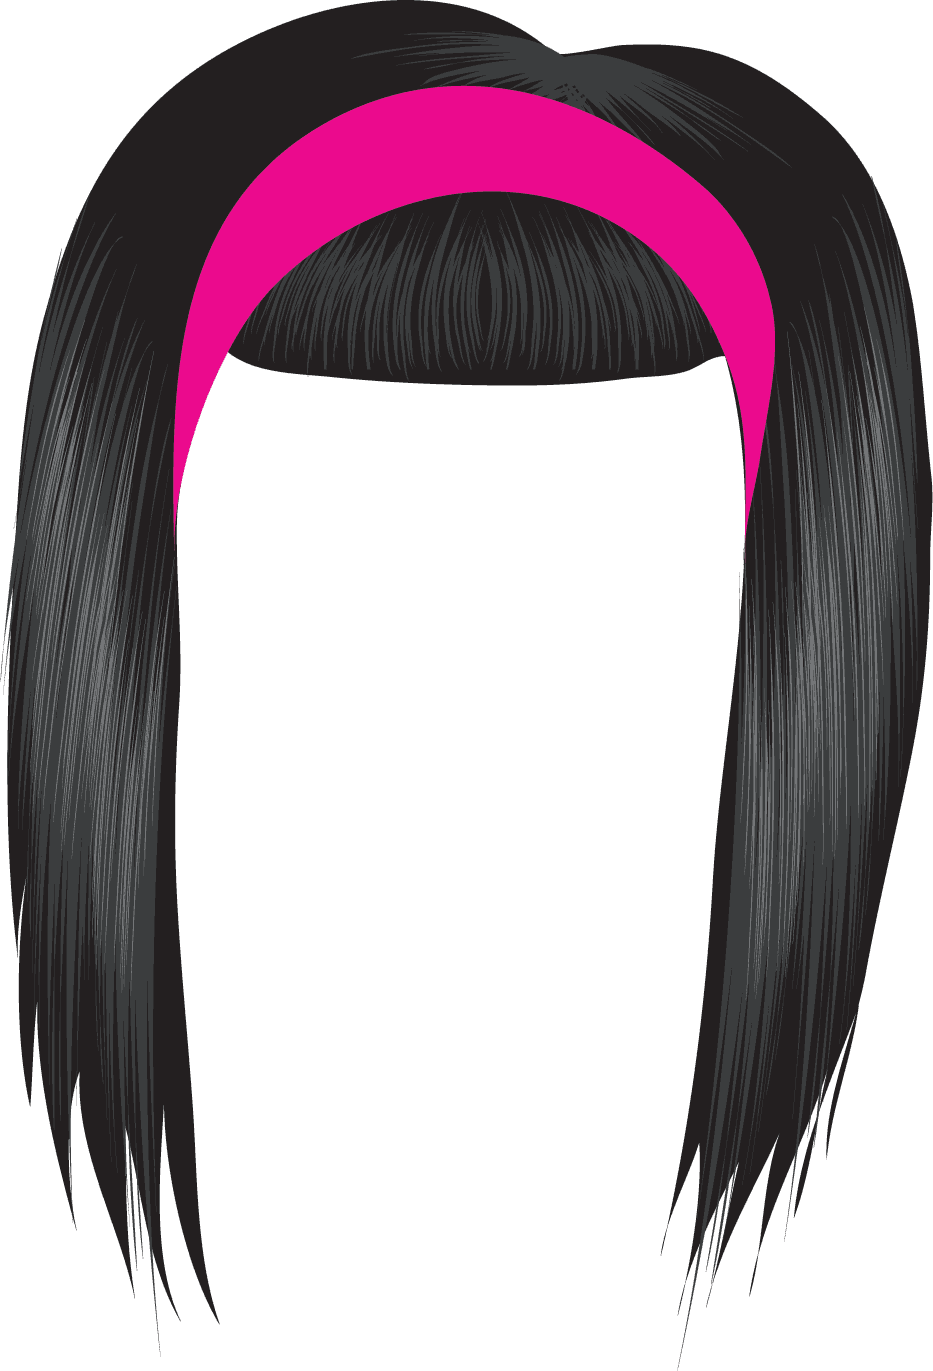 Wigs clipground fake hair. Afro clipart crazy wig clipart transparent library